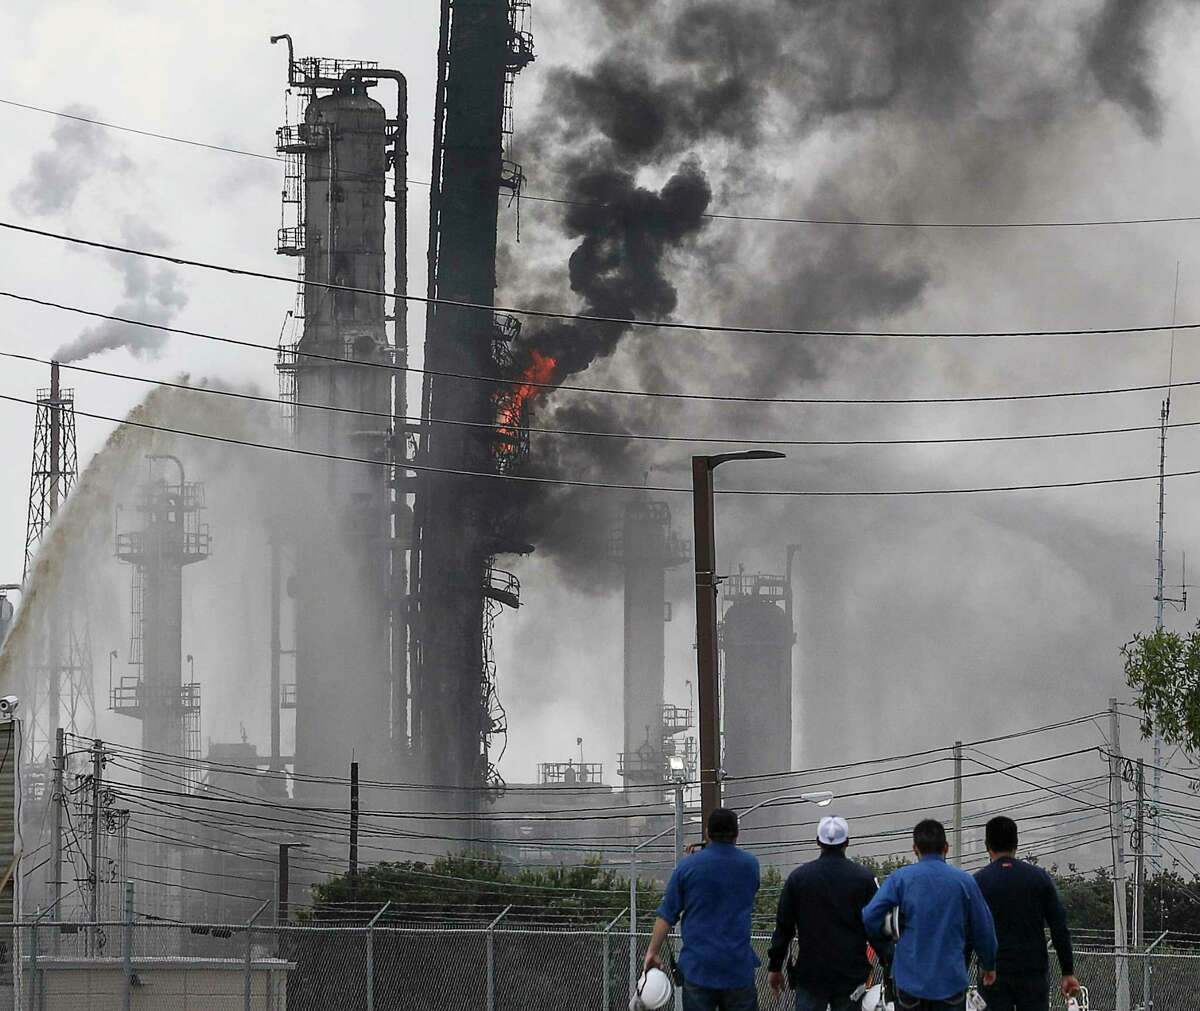 Workers watch a fire burn at the ExxonMobil Baytown Olefins Plant on Wednesday, July 31, 2019, in Baytown.